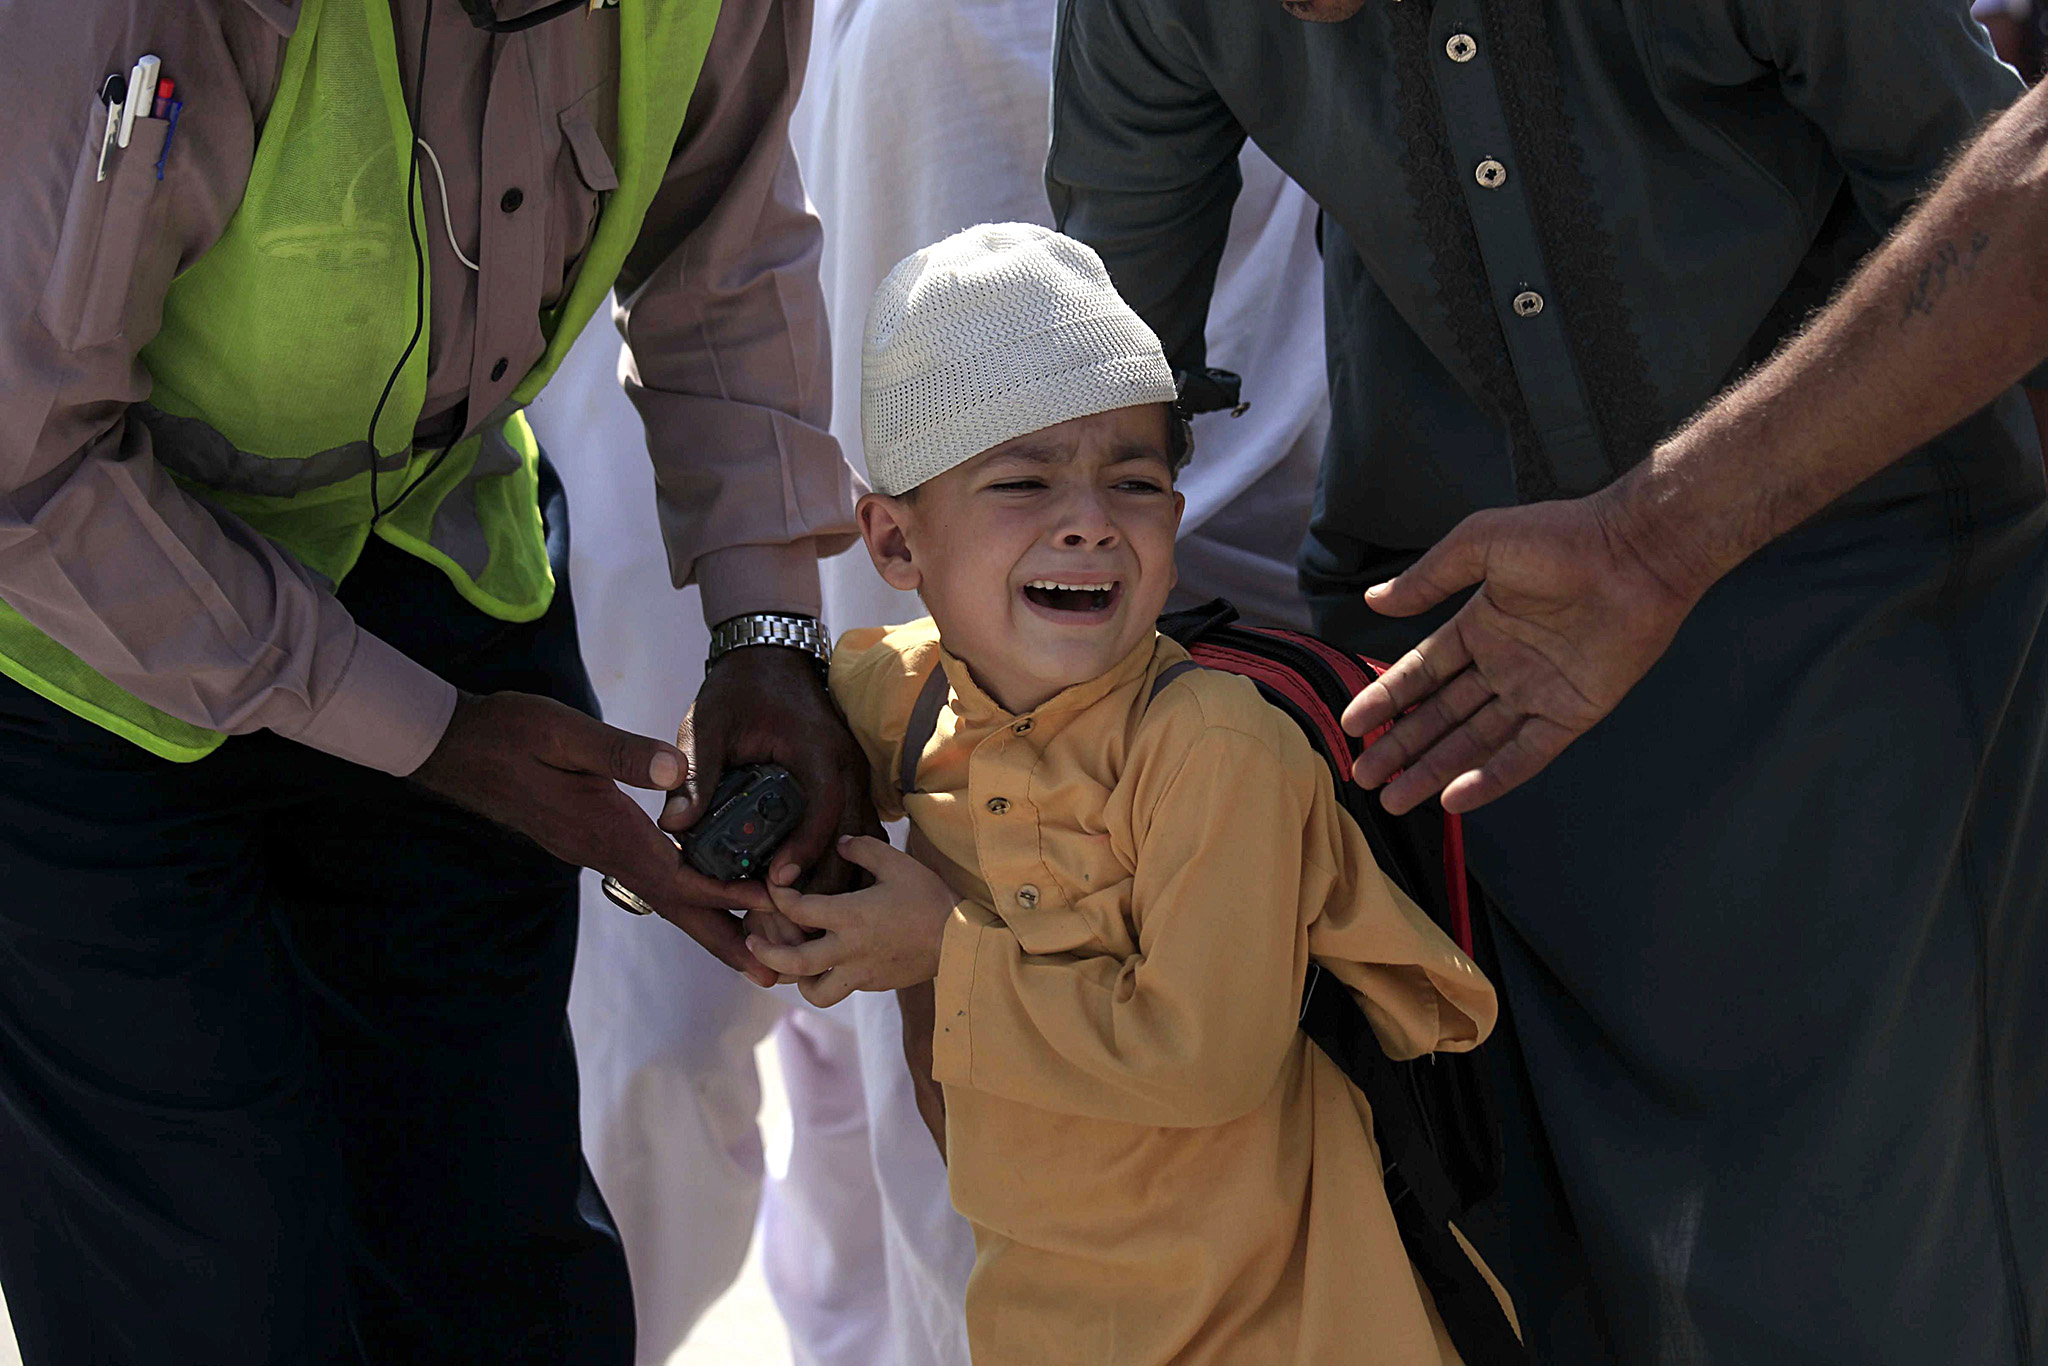 A school boy cries following a bomb blast targeting a Christian colony in the Khyber Pakhtunkhwa provincial capital of Peshawar, Pakistan, 02 September 2016. According to media reports, four suicide bombers were shot dead by security forces after they targeted a Christian neighborhood near Peshawar, one person was killed in this incident. In another incident a suicide bomber has targeted a court in Mardan, where 11 people were killed and 30 other were wounded.  EPA/BILAWAL ARBAB  EPA/BILAWAL ARBAB